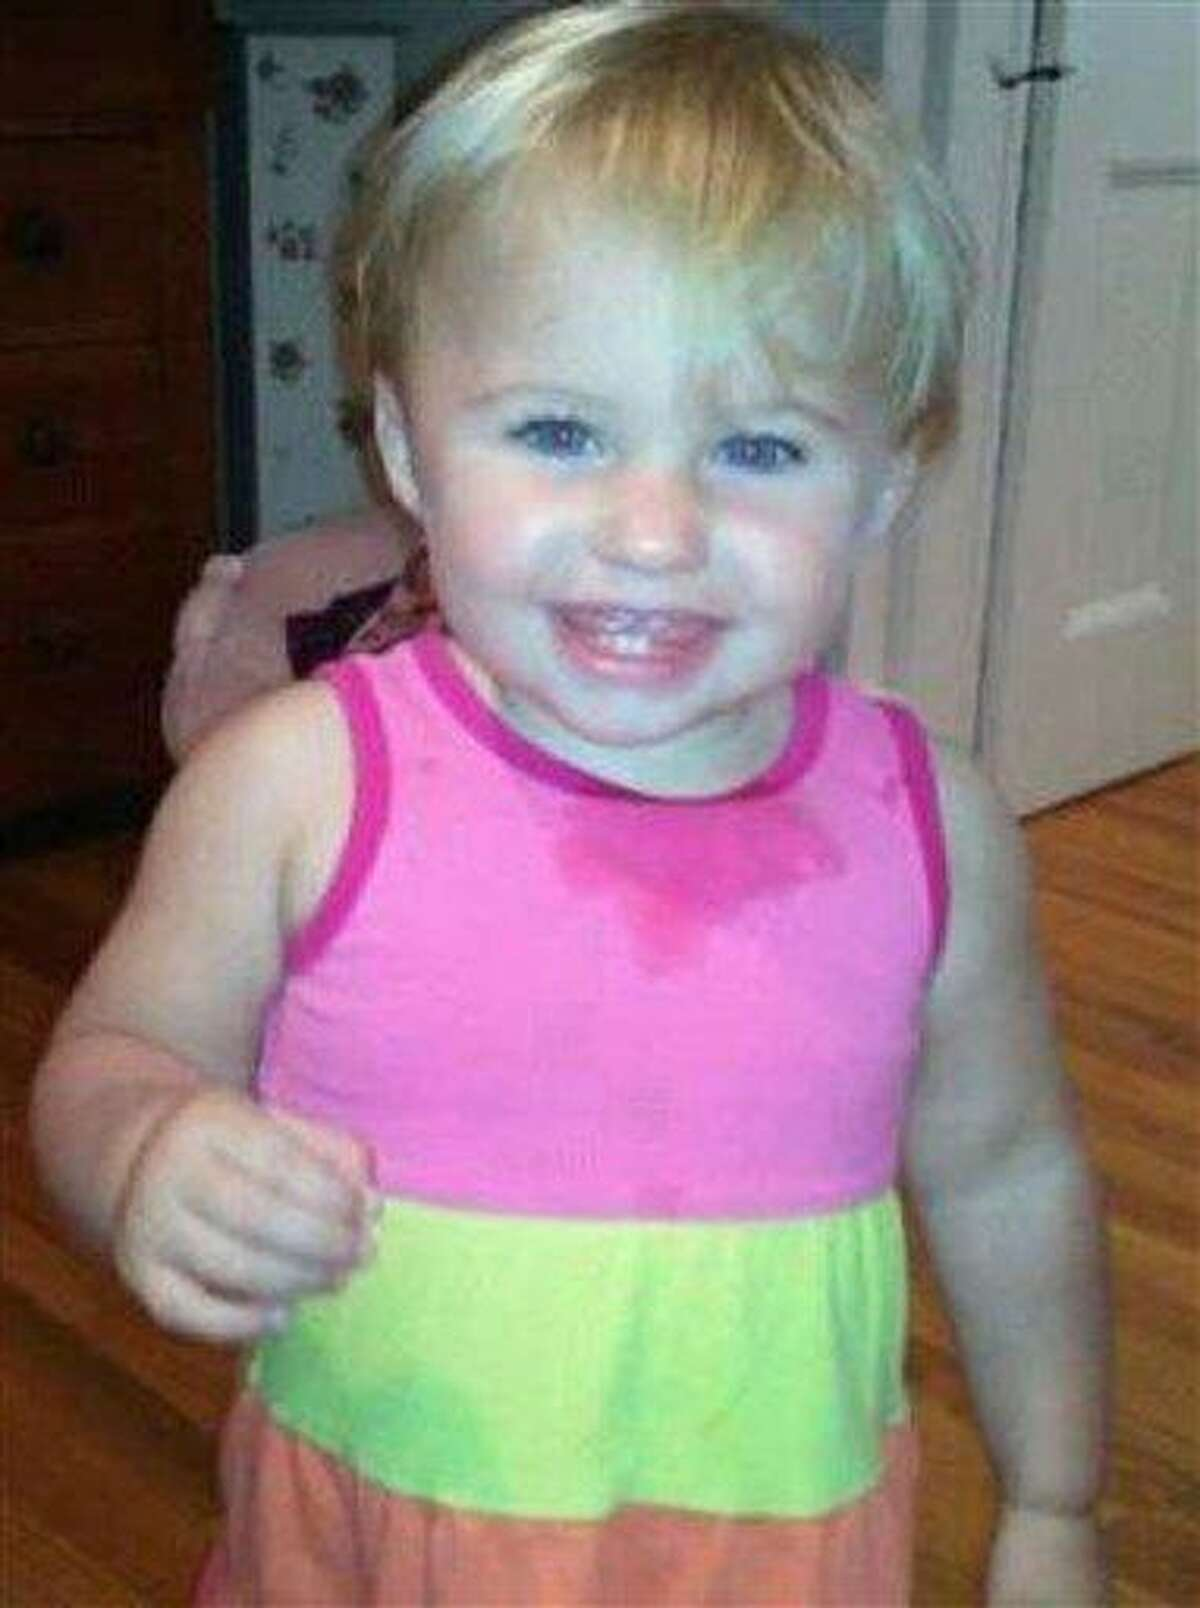 This undated photo obtained from a Facebook page shows missing toddler Alya Reynolds, a 20-month-old girl who went missing from her father's home in Waterville, Maine on Dec. 17, 2011. Dive teams from the Maine Warden Service and state police began searching for her in the Kennebec River Wednesday in Waterville. Associated Press